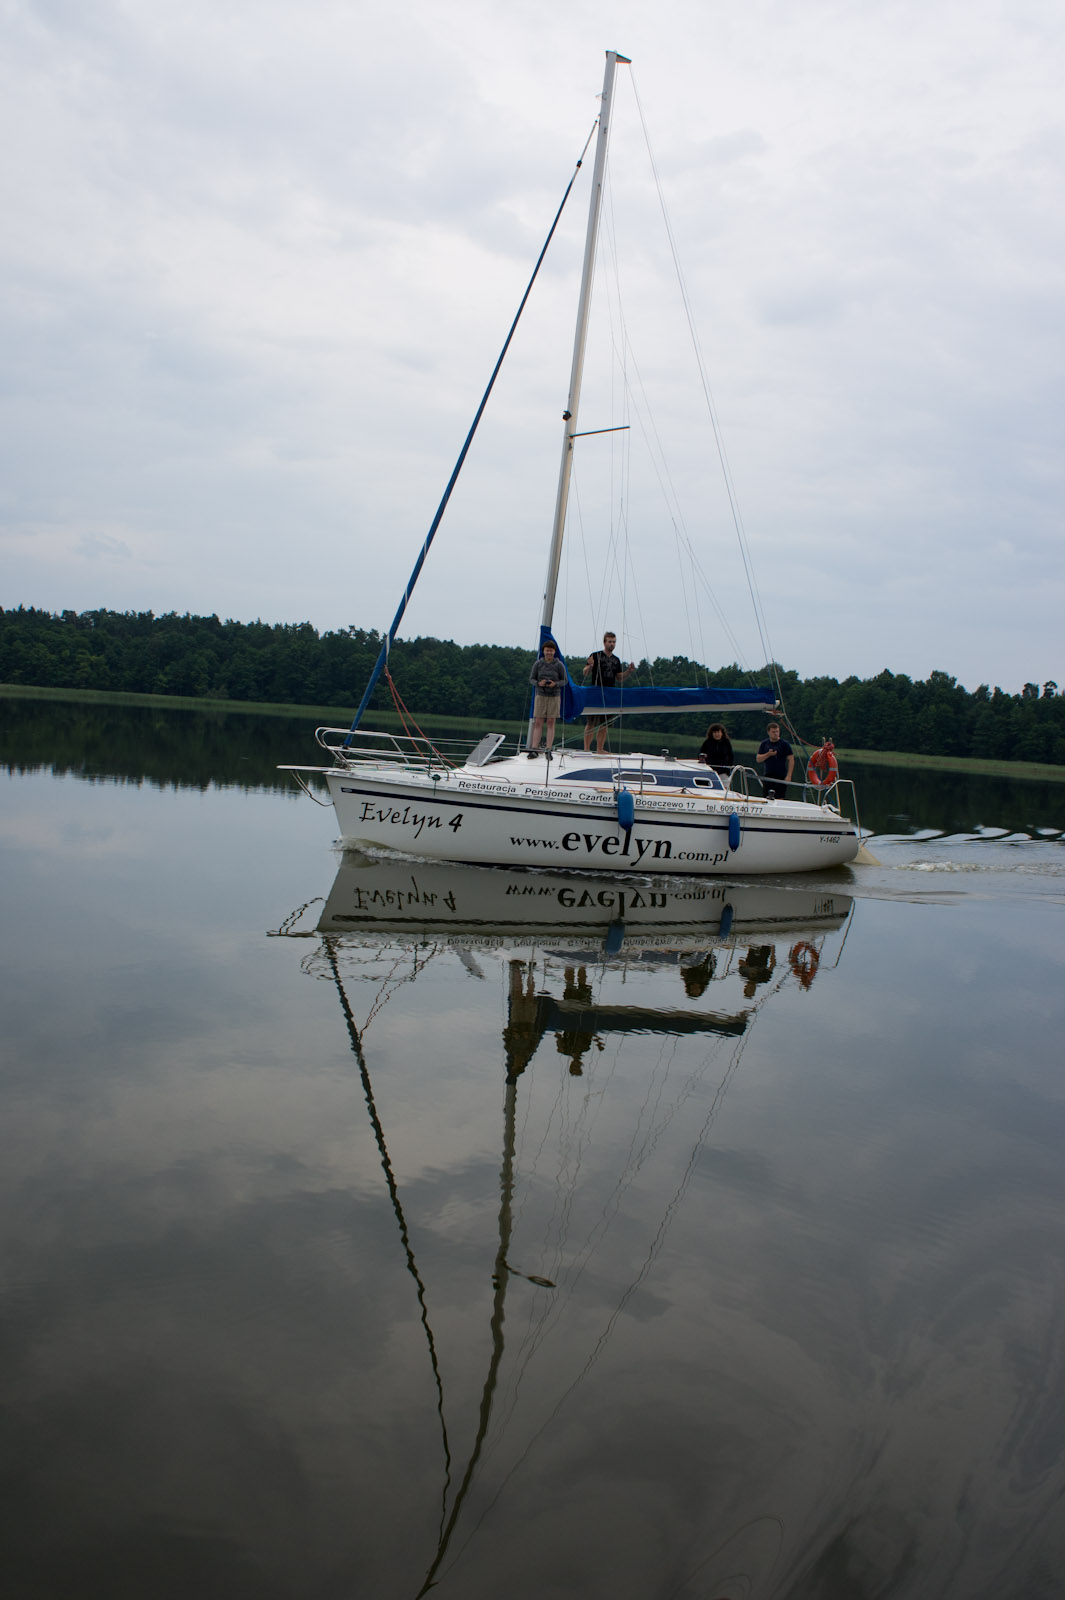 2 - moored, 4 - approaching